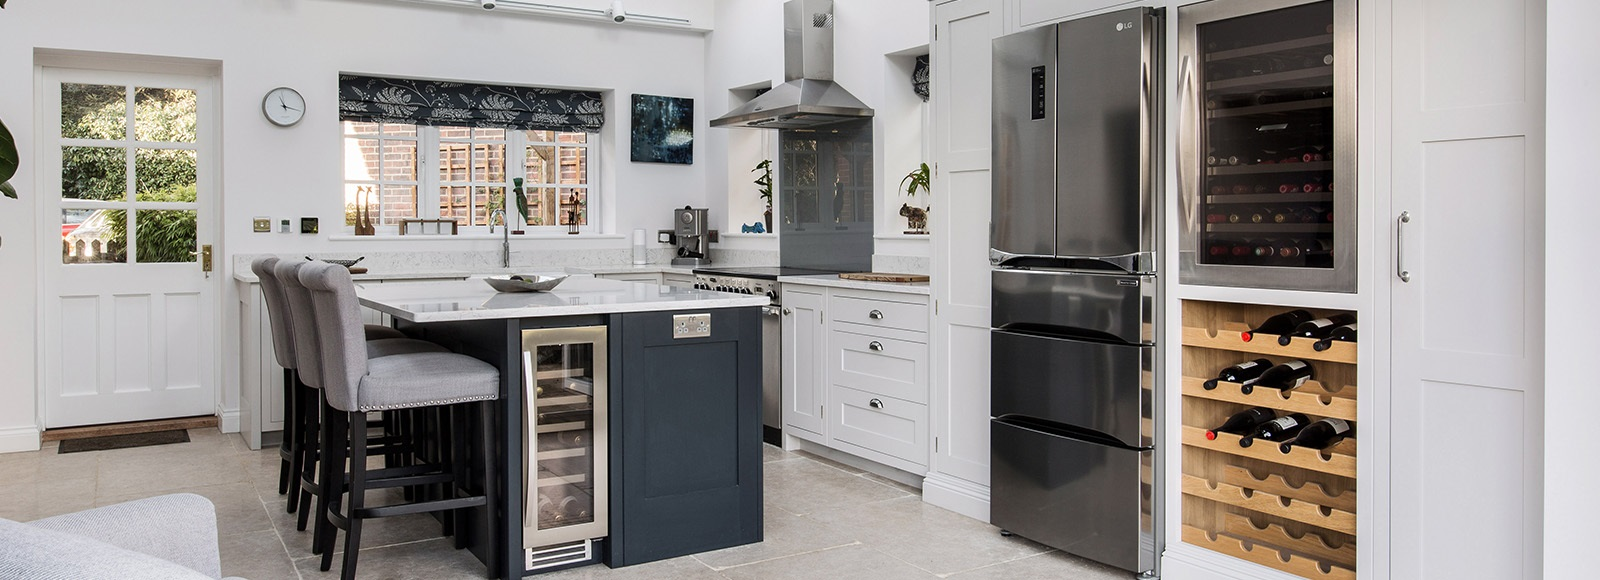 Luxury Shaker Kitchen - Burlanes bespoke Hoyden kitchen with central island, wine cooler and handmade wine rack.